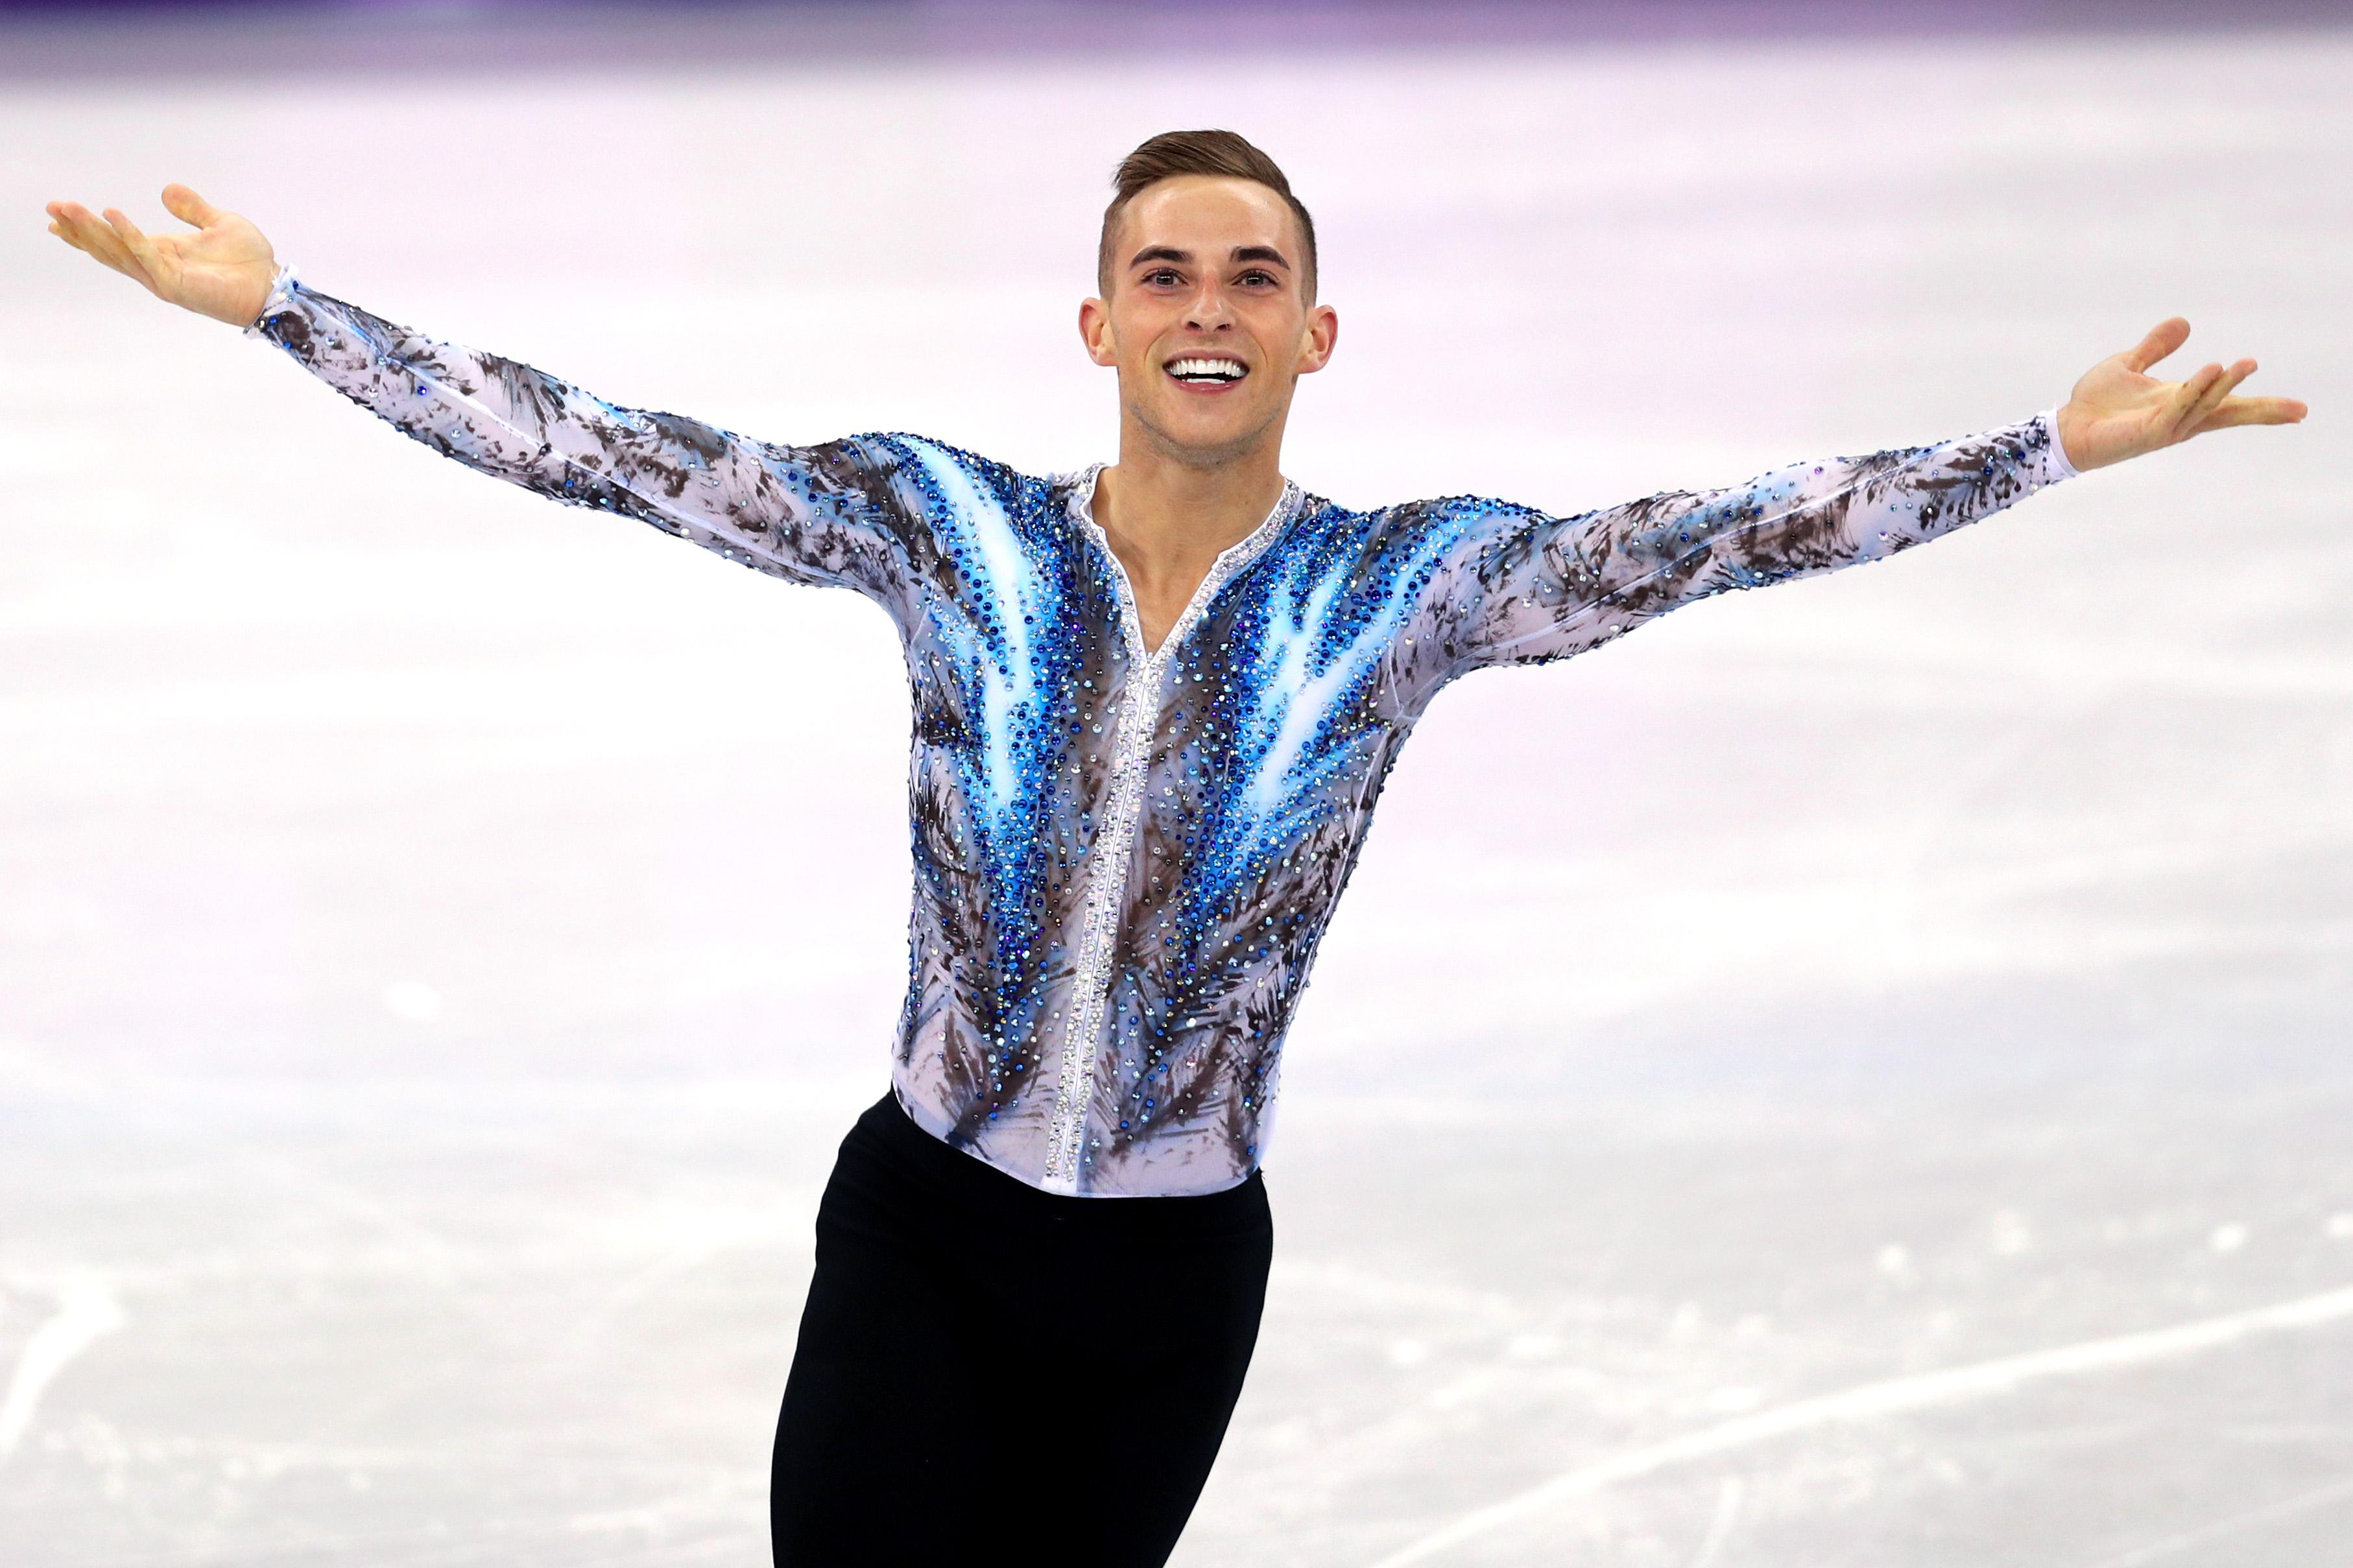 Figure skater Adam Rippon celebrates after competing on day three of the Pyeongchang 2018 Winter Olympic Games on Feb. 12, 2018.